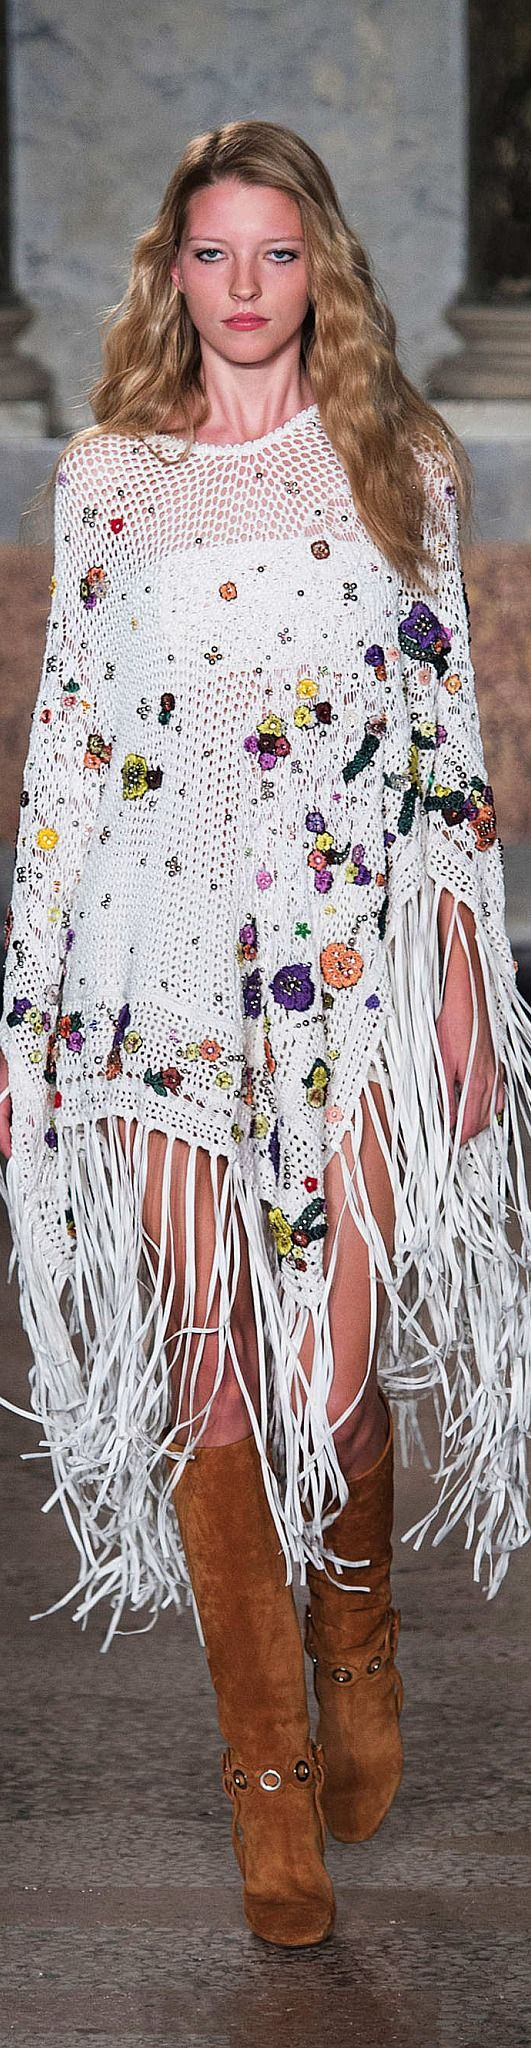 Emilio Pucci Collection Spring 2015. V//BOHO FASHION